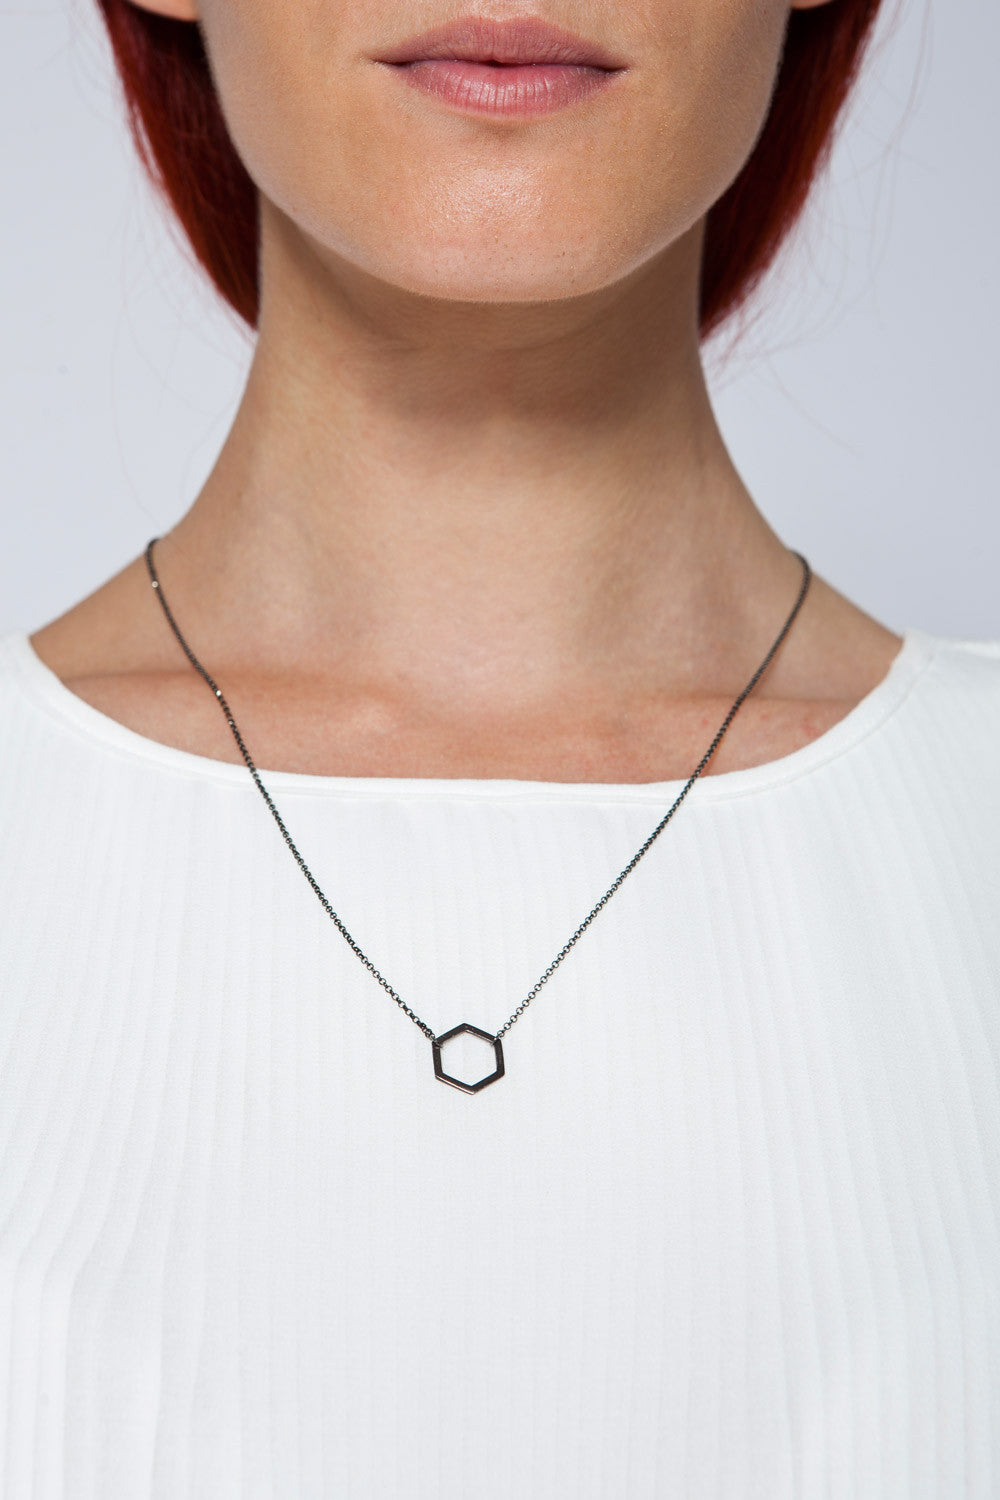 MOUTSATSOS - LONG BLACK GOLD GEOMETRY NECKLACE WITH BLACK MOTIF - Jewellery - Ozon Boutique